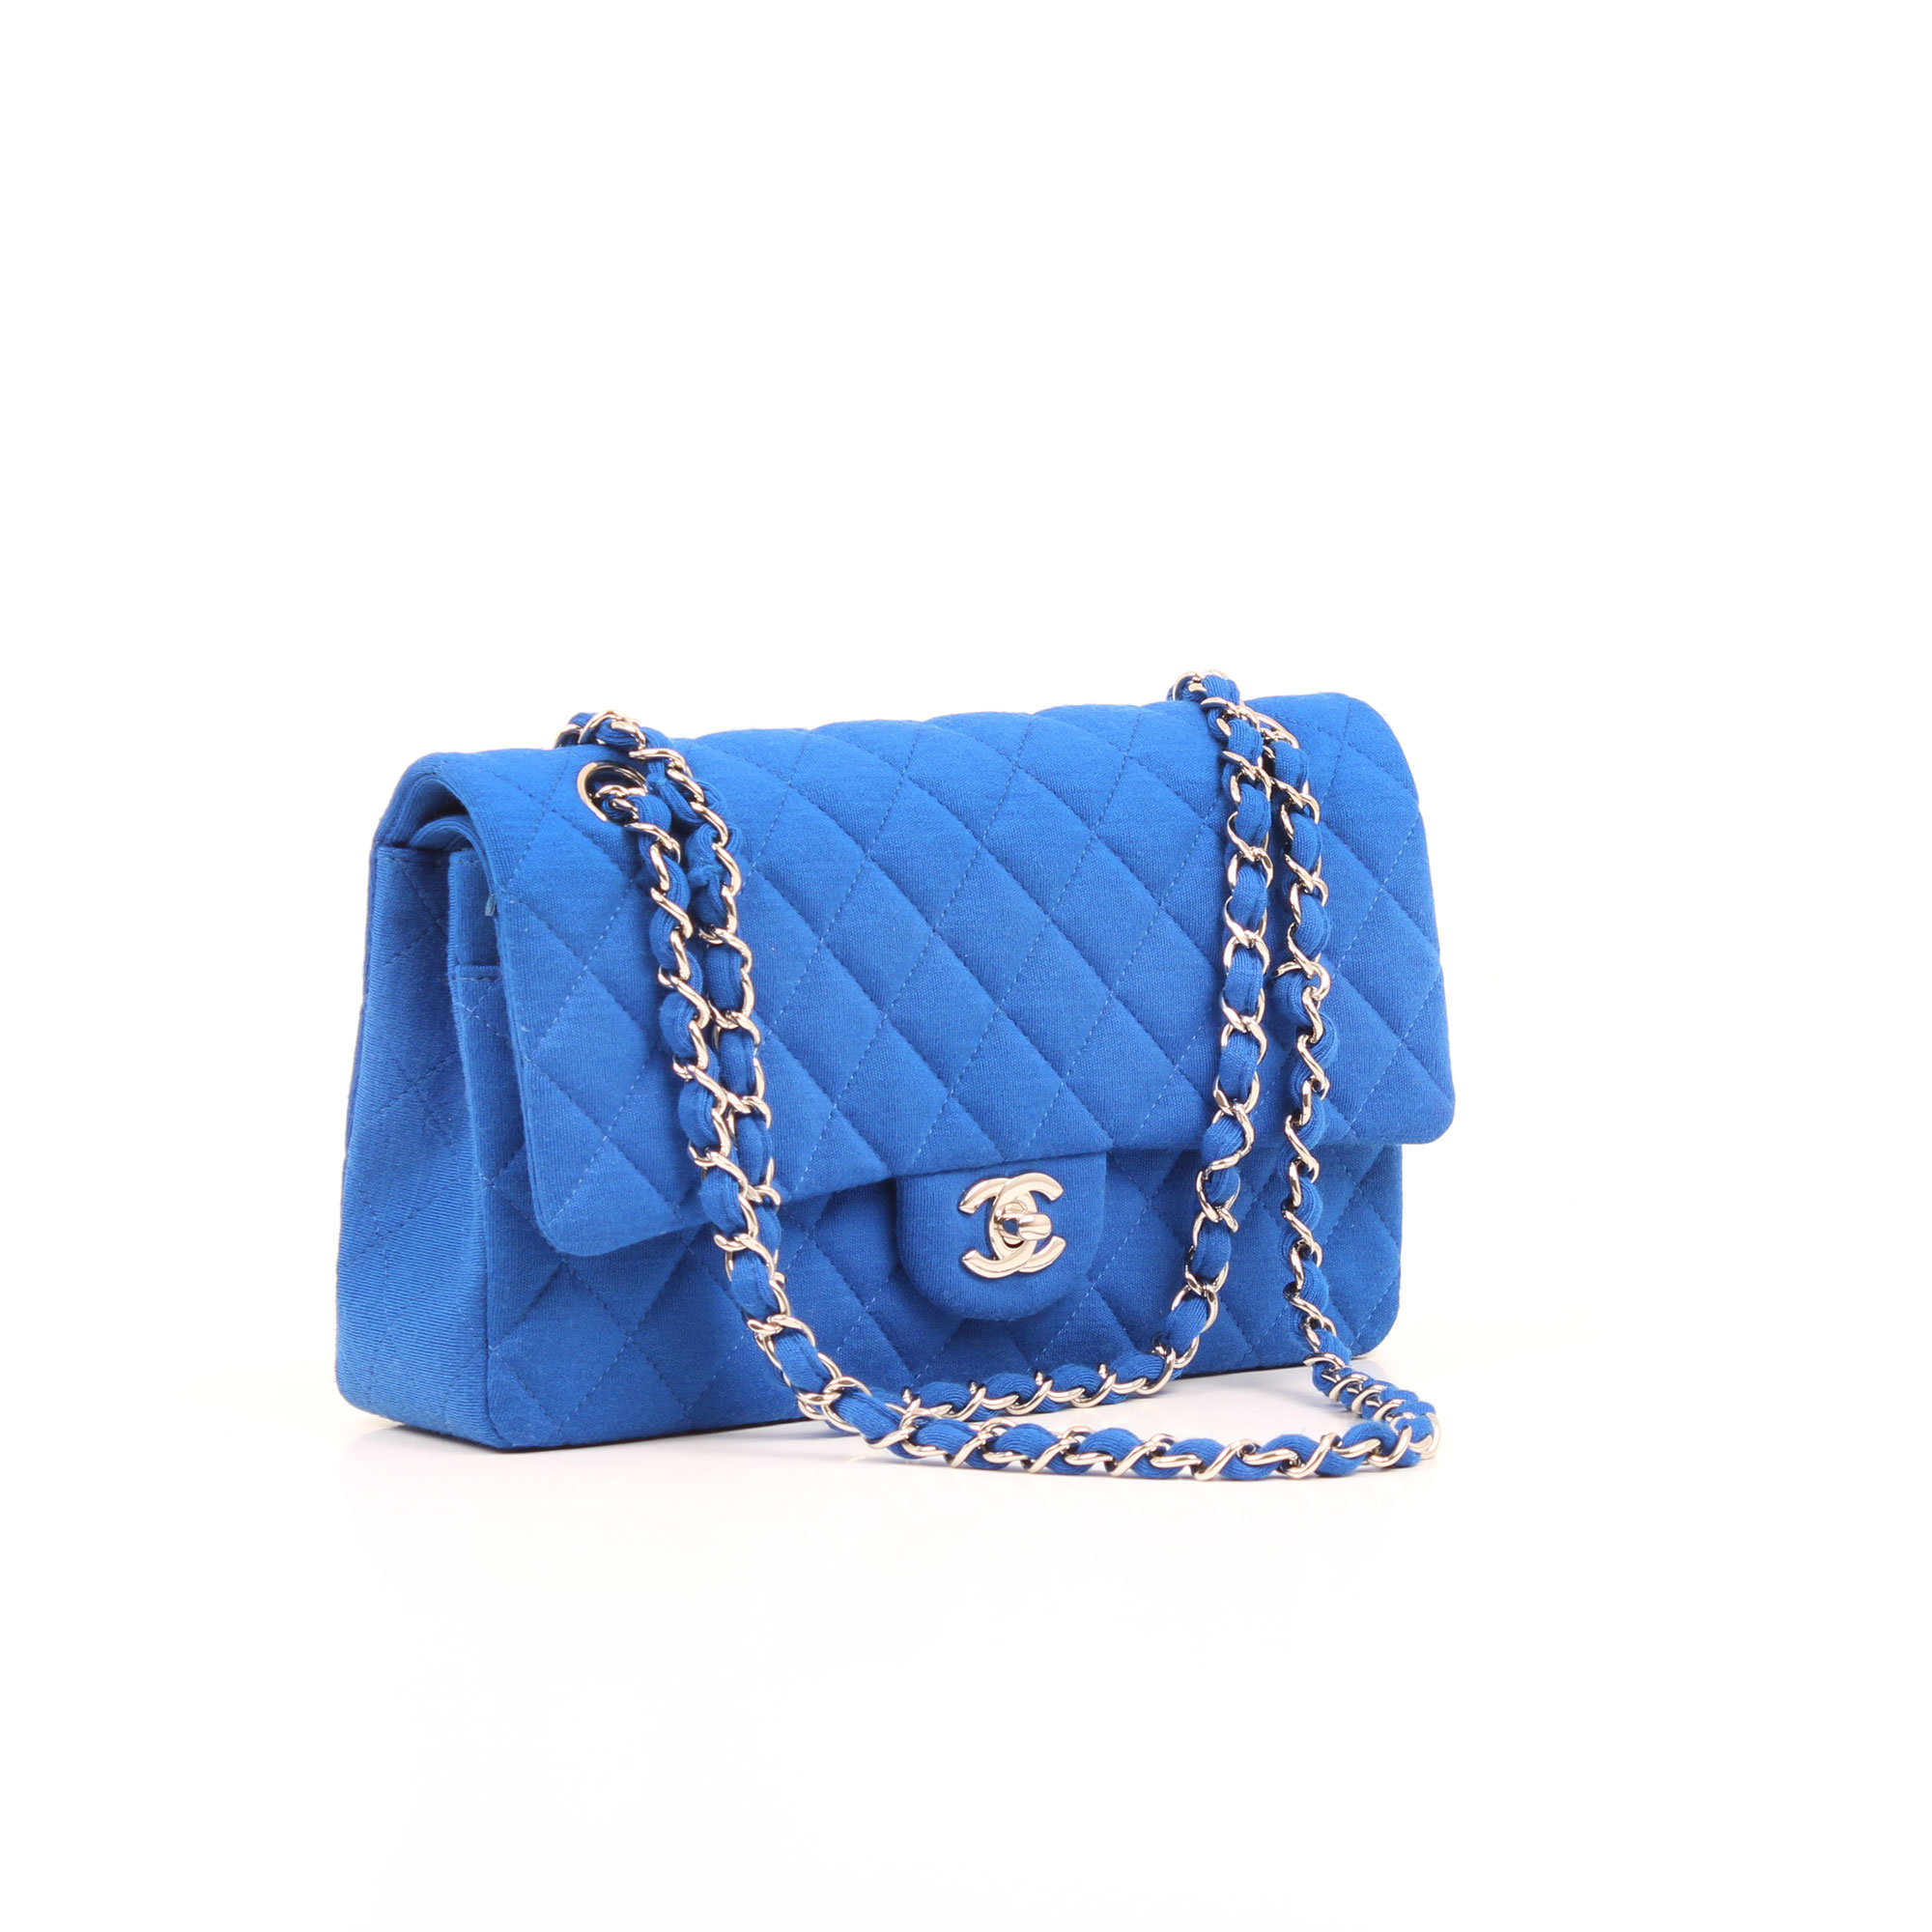 General image of chanel classic jersey blue quilted timeless double flap bag